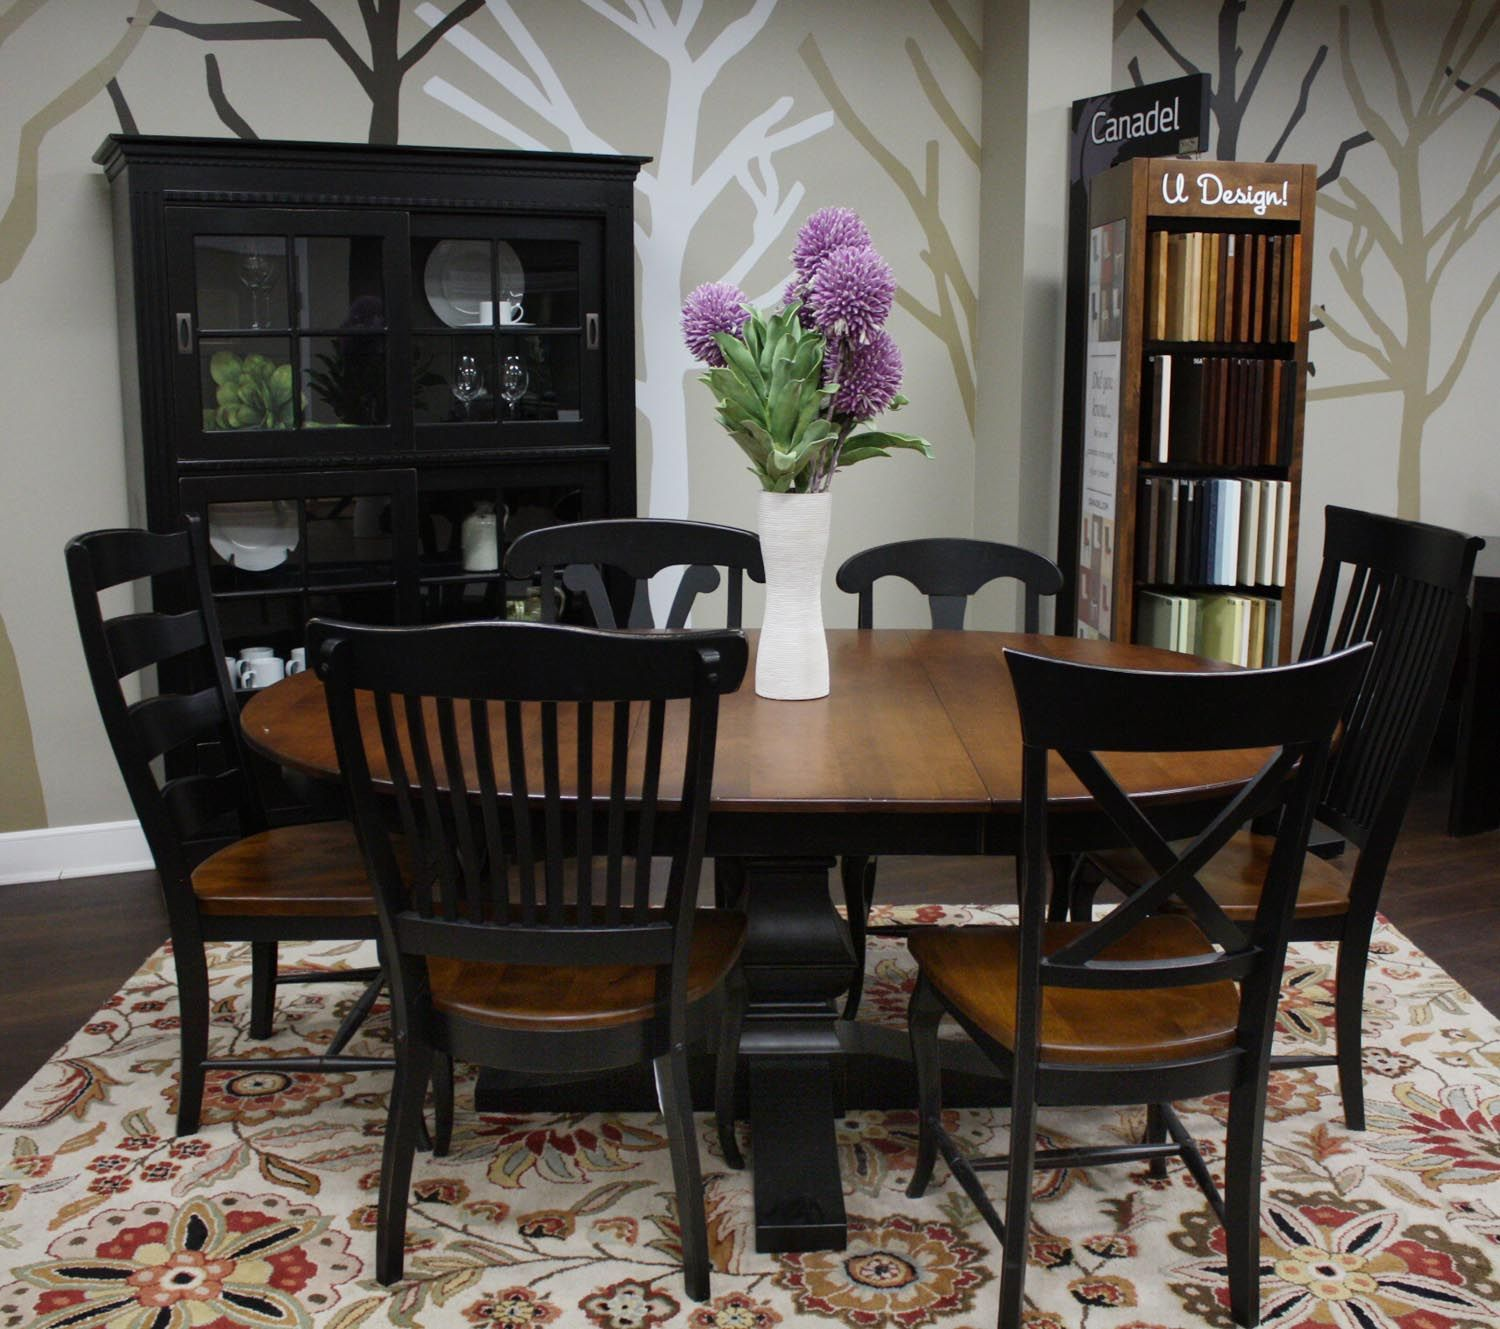 Canadel Dining Room Set Spice Amp Black Customdinepkg1